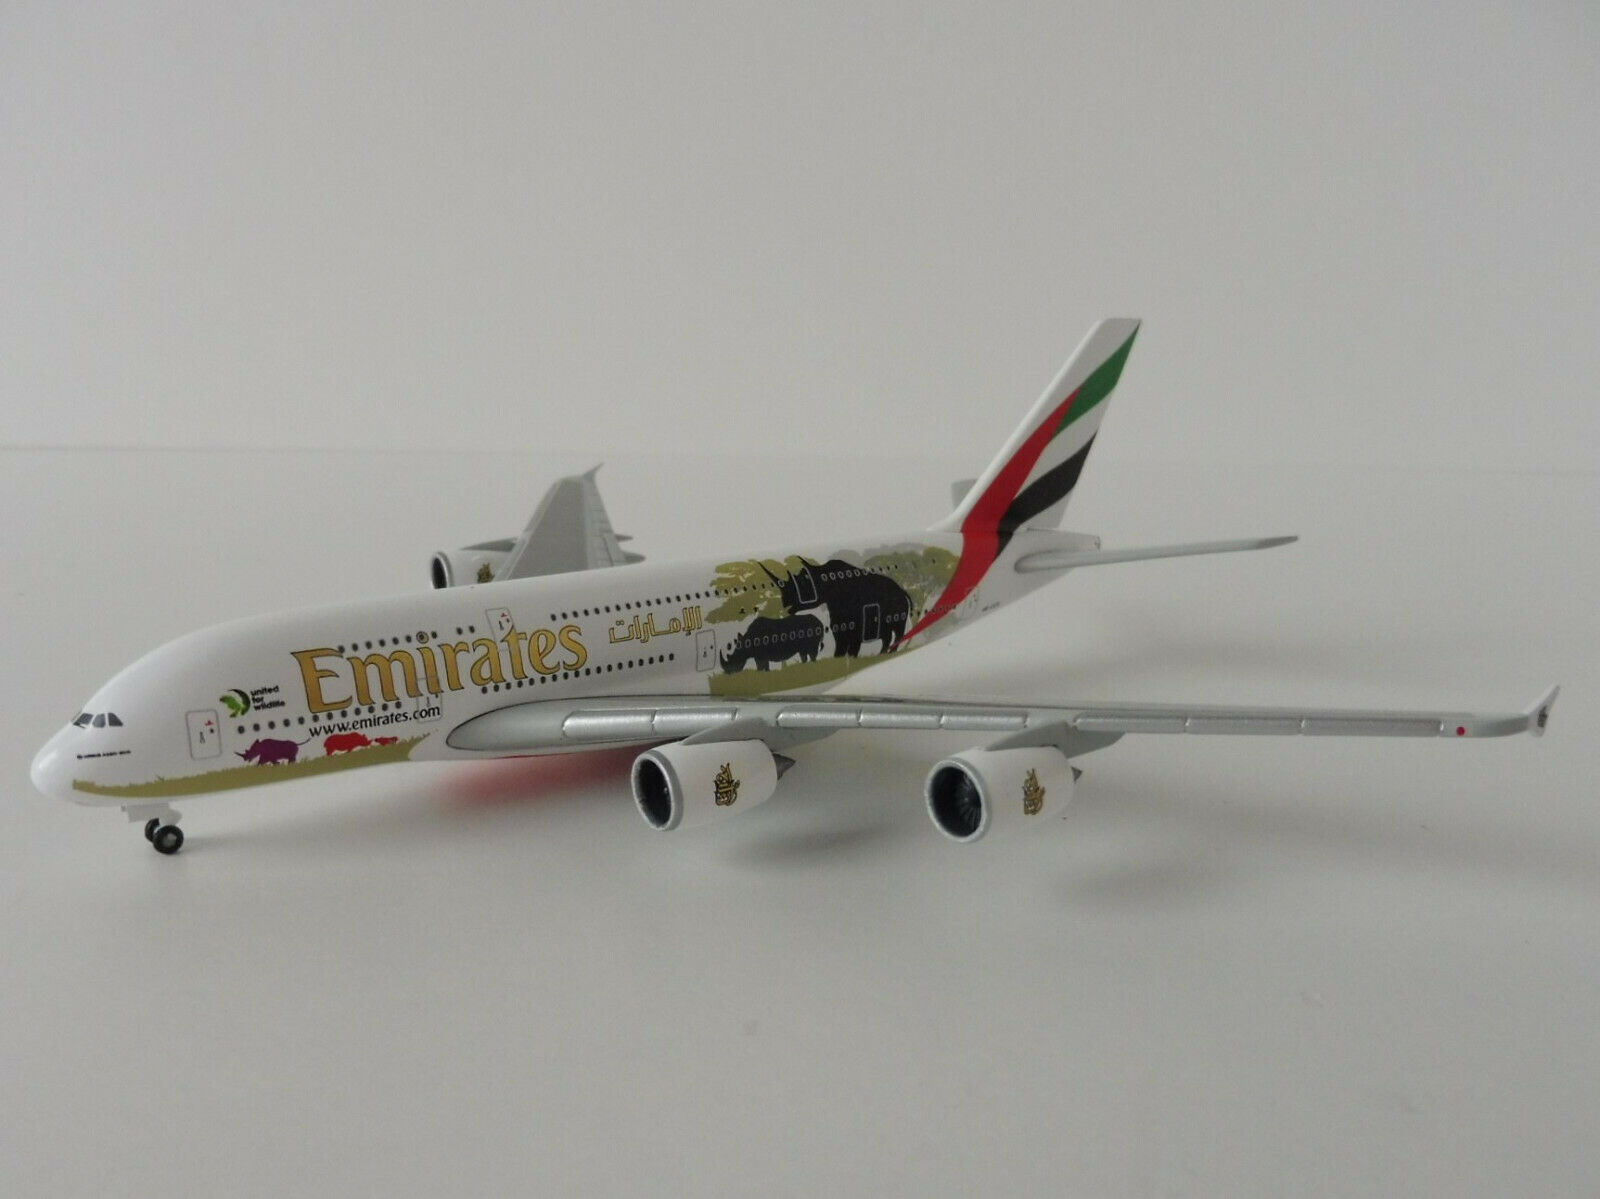 EMIRATES Airbus A380-800 WILDLIFE No.2 1 500 Herpa 532723 532723 532723 A 380 A380 United for 6984cc